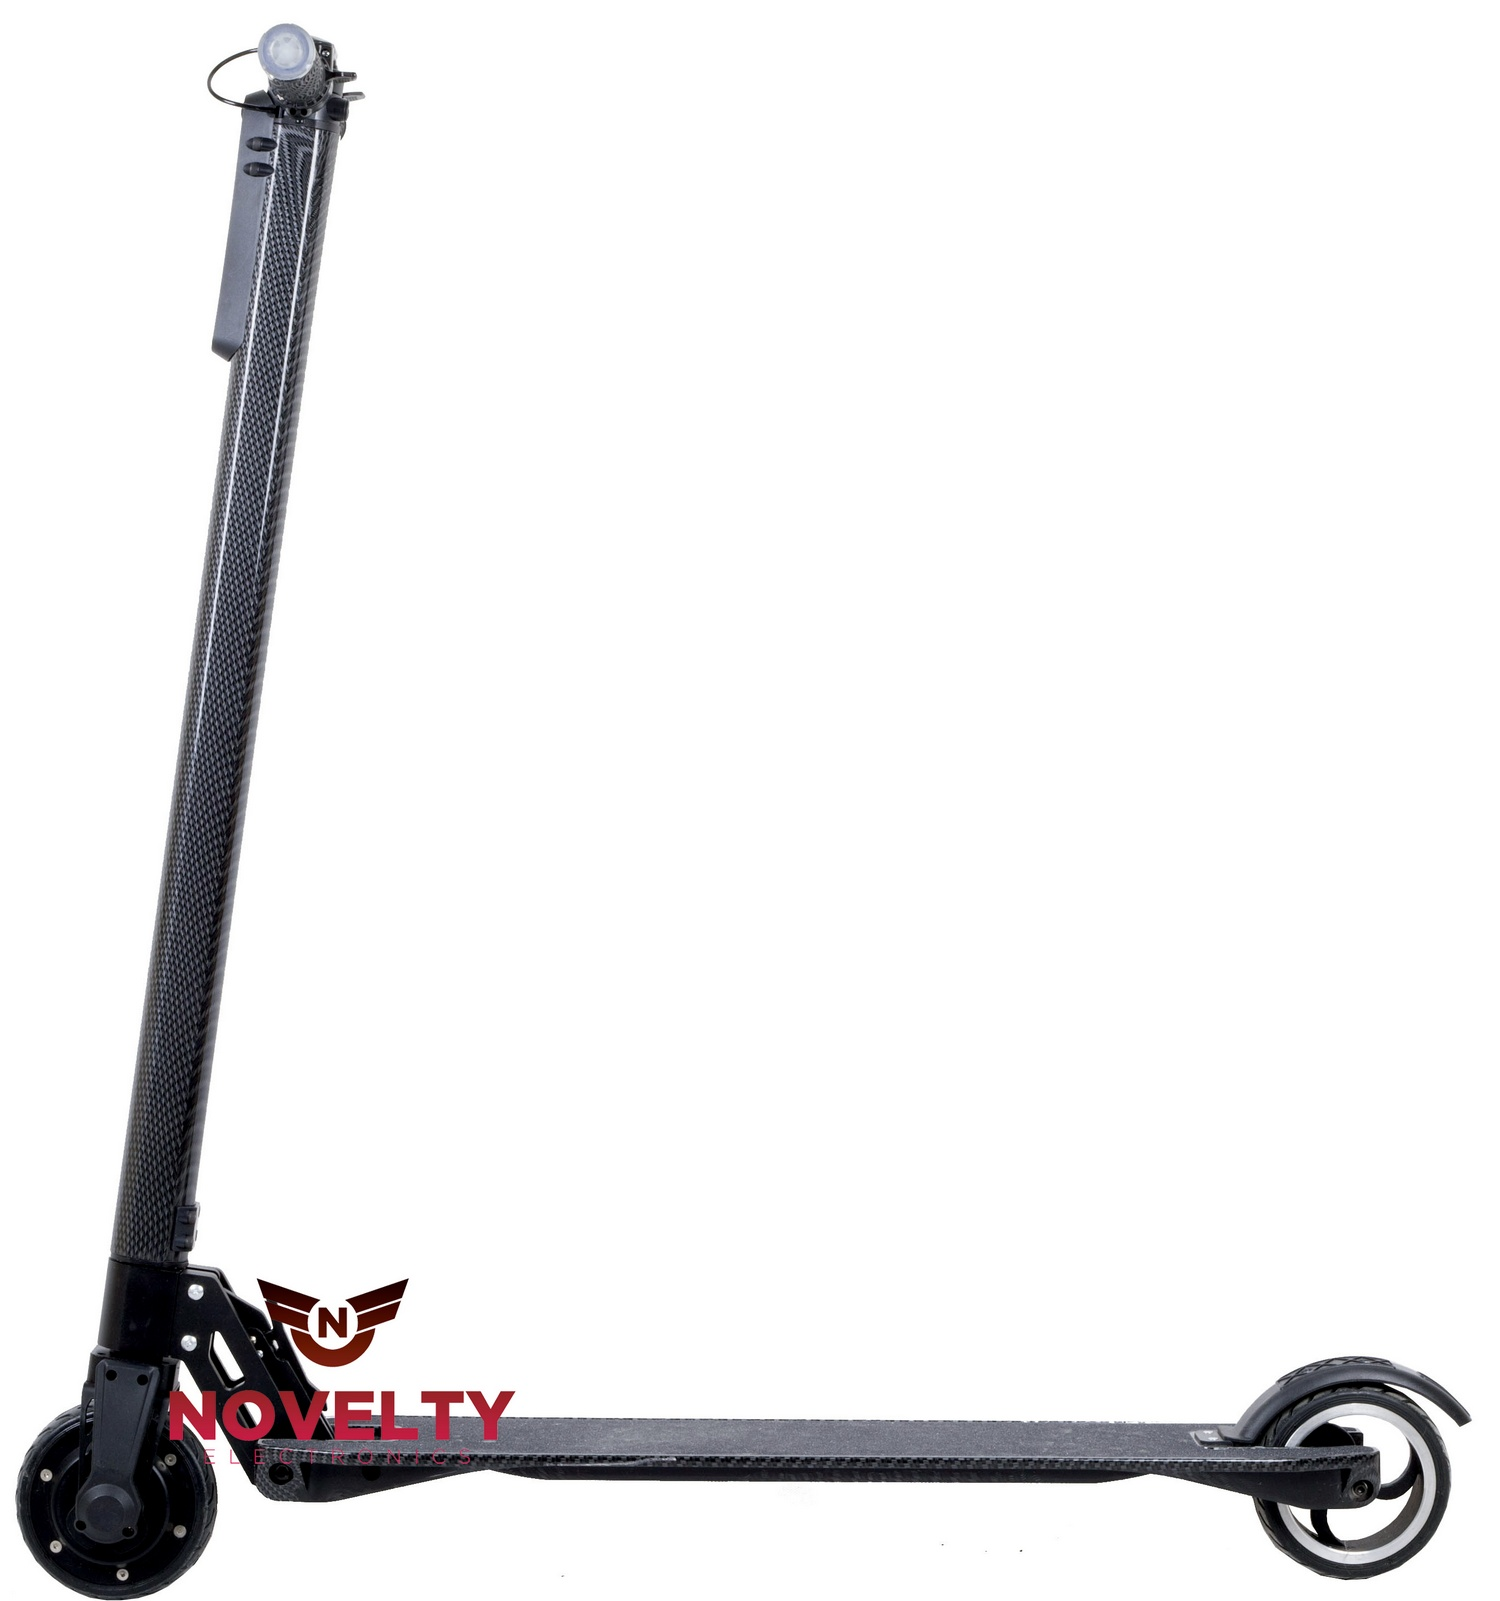 Skate Scooter 5.5